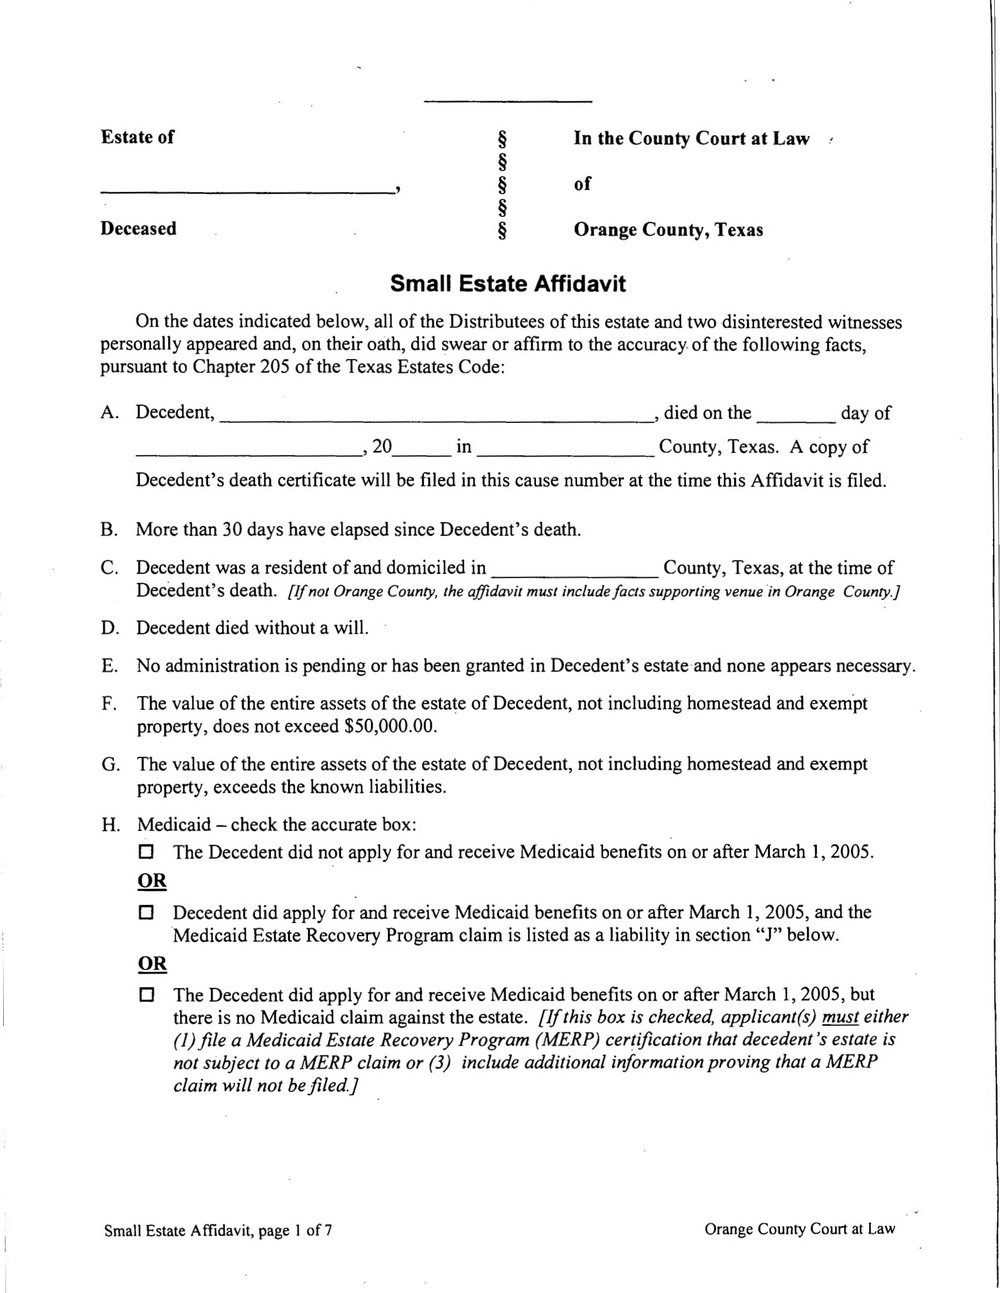 Texas Small Estate Affidavit Form